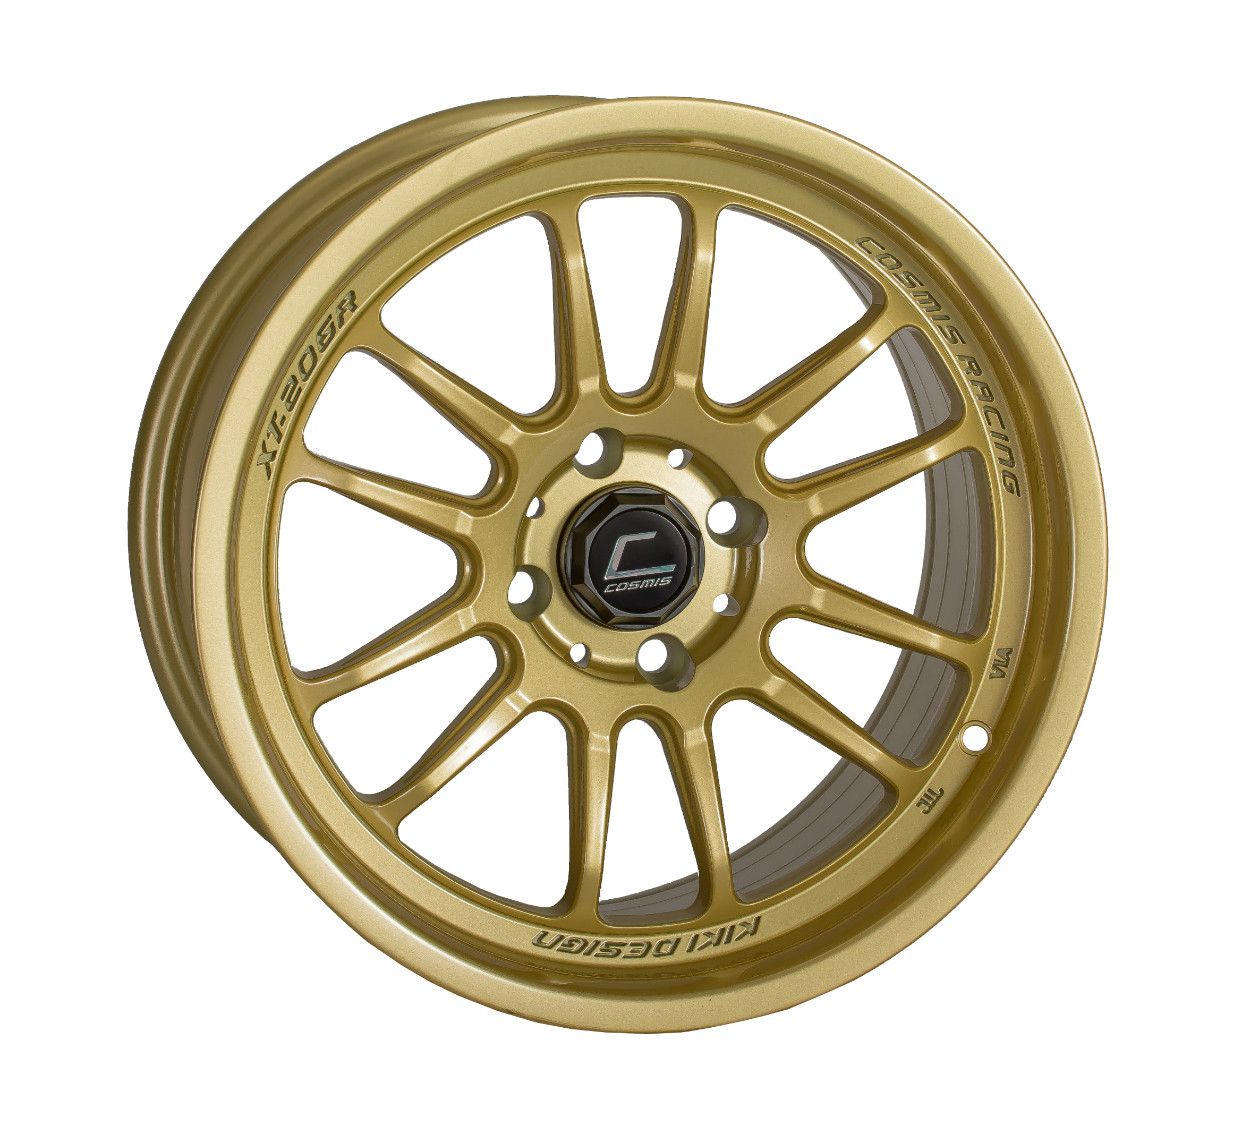 "Cosmis Racing XT-206R Wheel in 15x8"" - Gold"